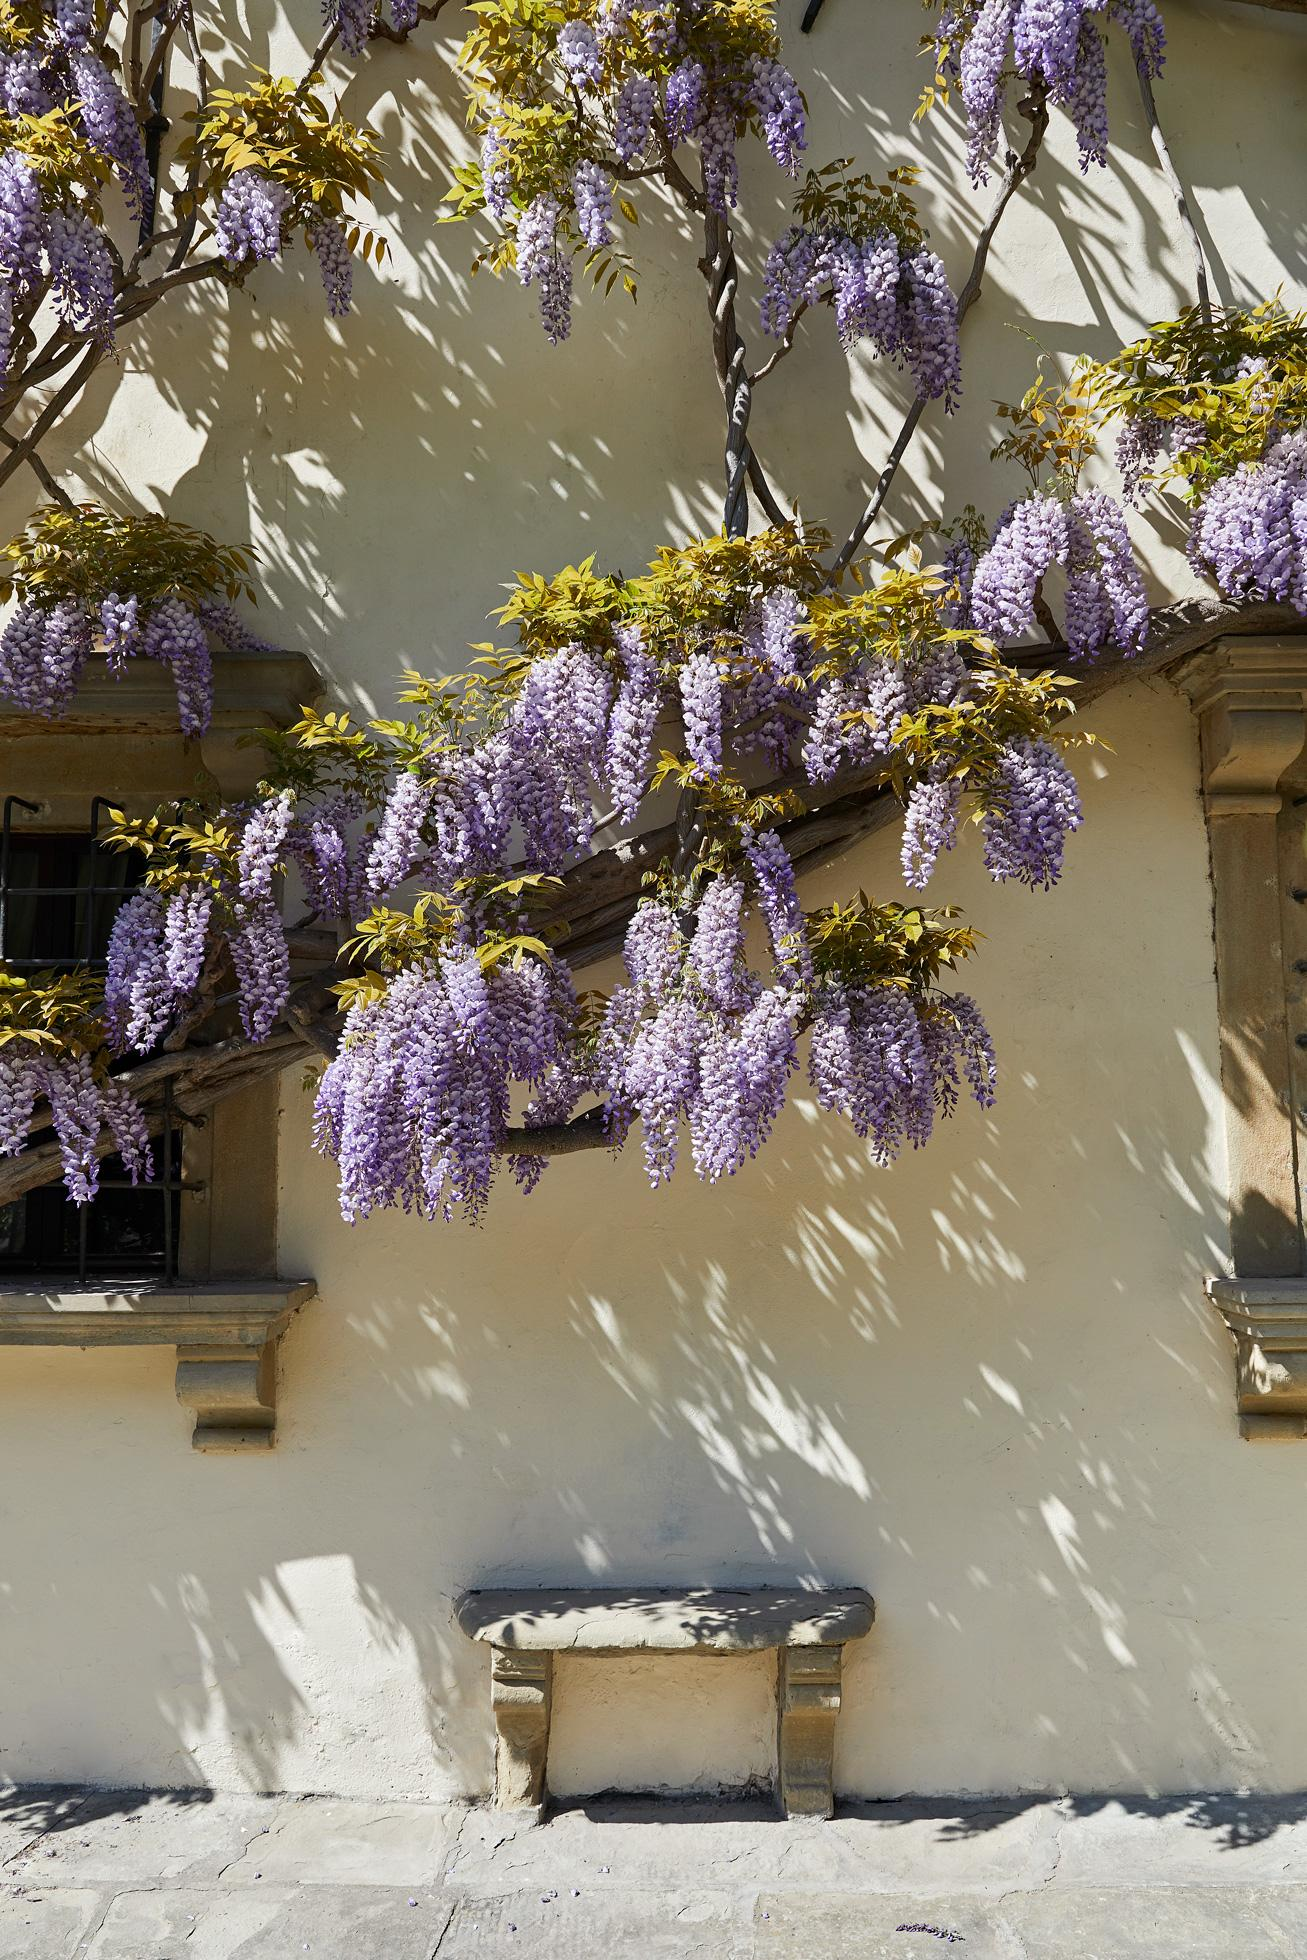 Century-old wisteria in bloom